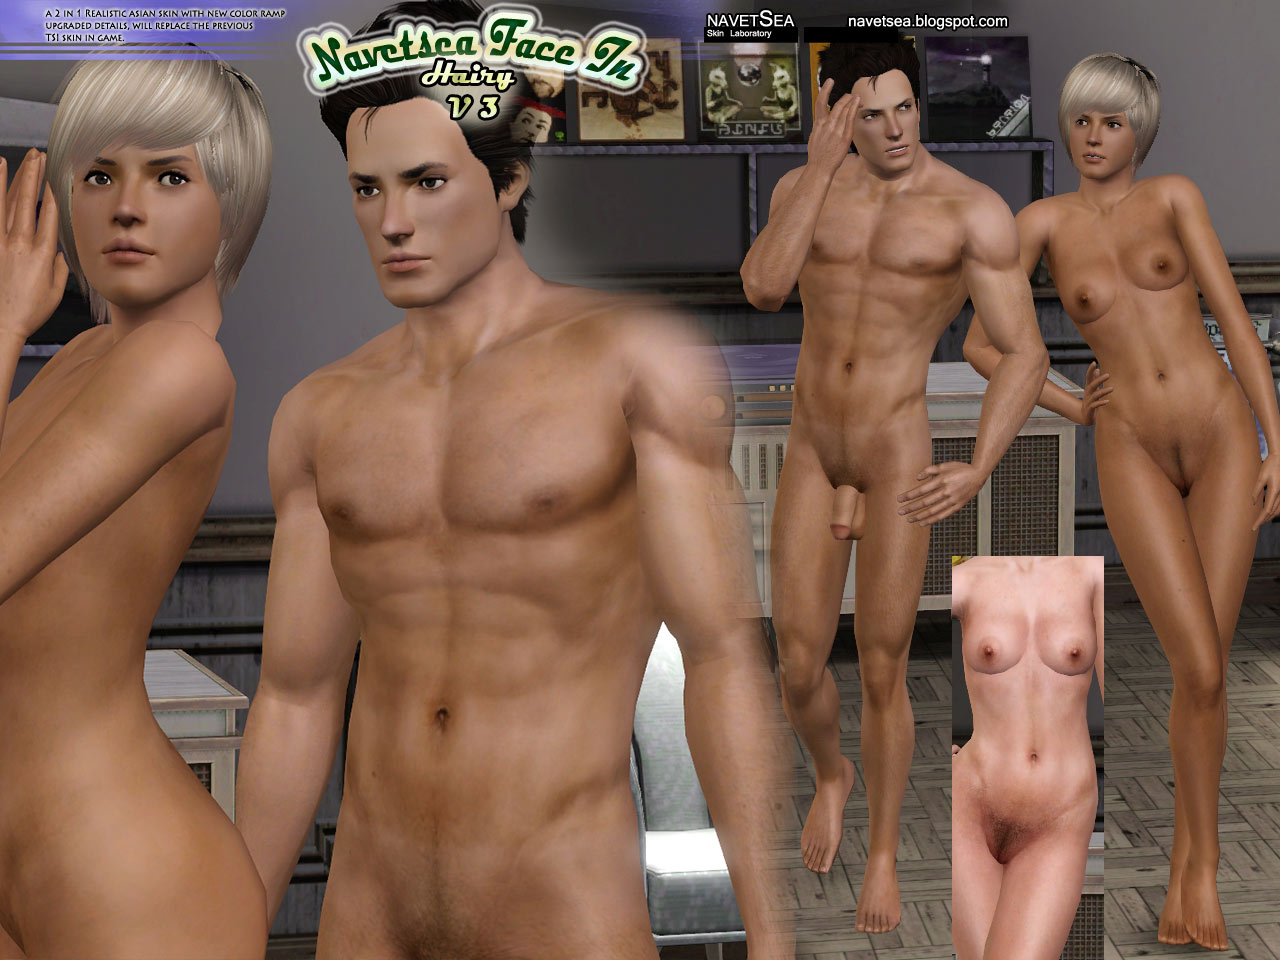 Nude mod for sims cartoon images